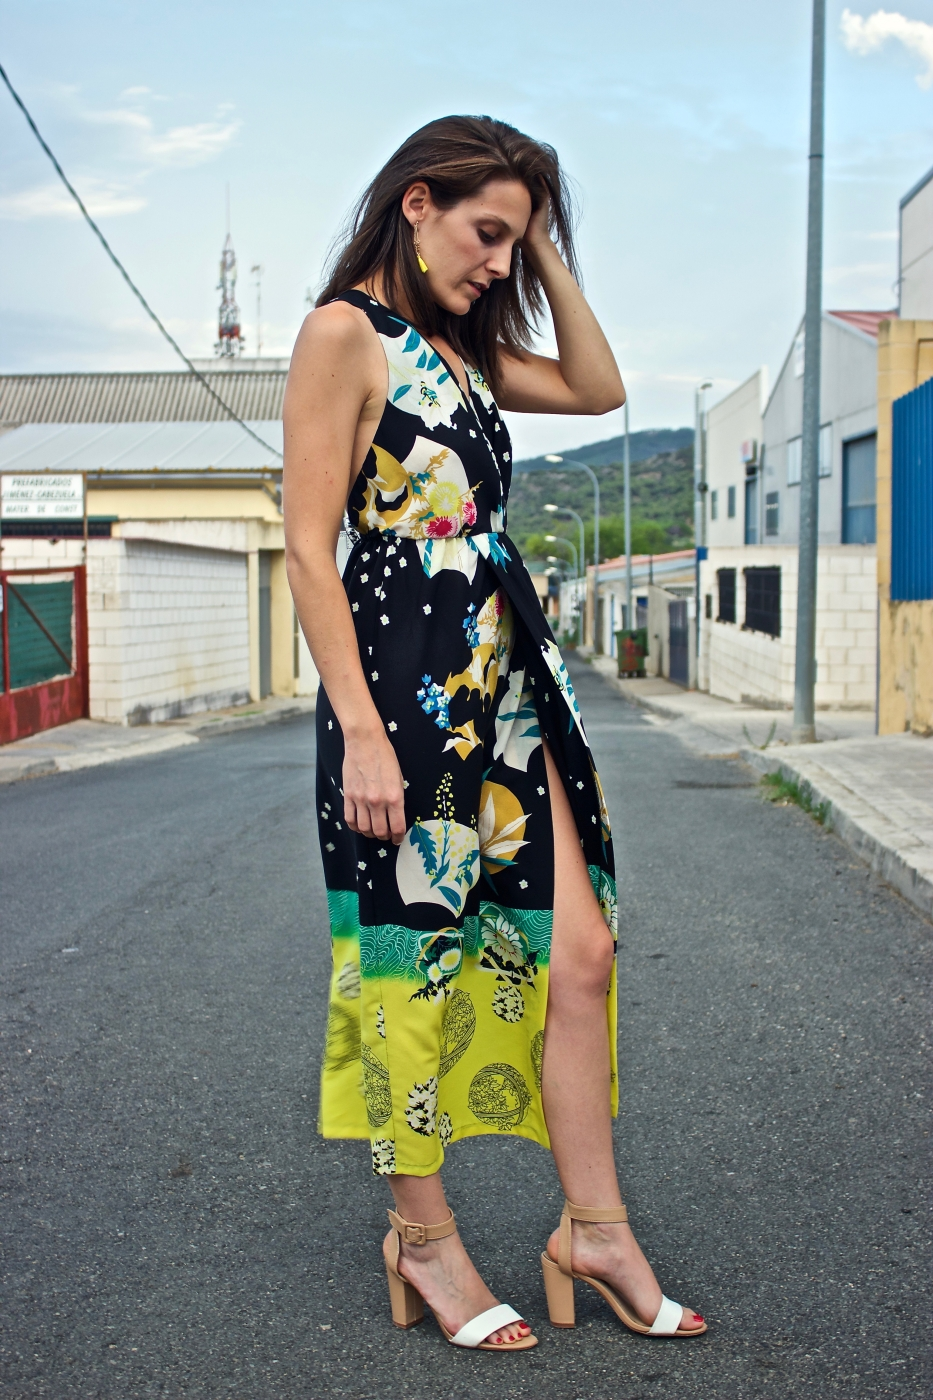 lara-vazquez-madlula-style-streetstyle-look-ootd-fashion-moda-long-dress